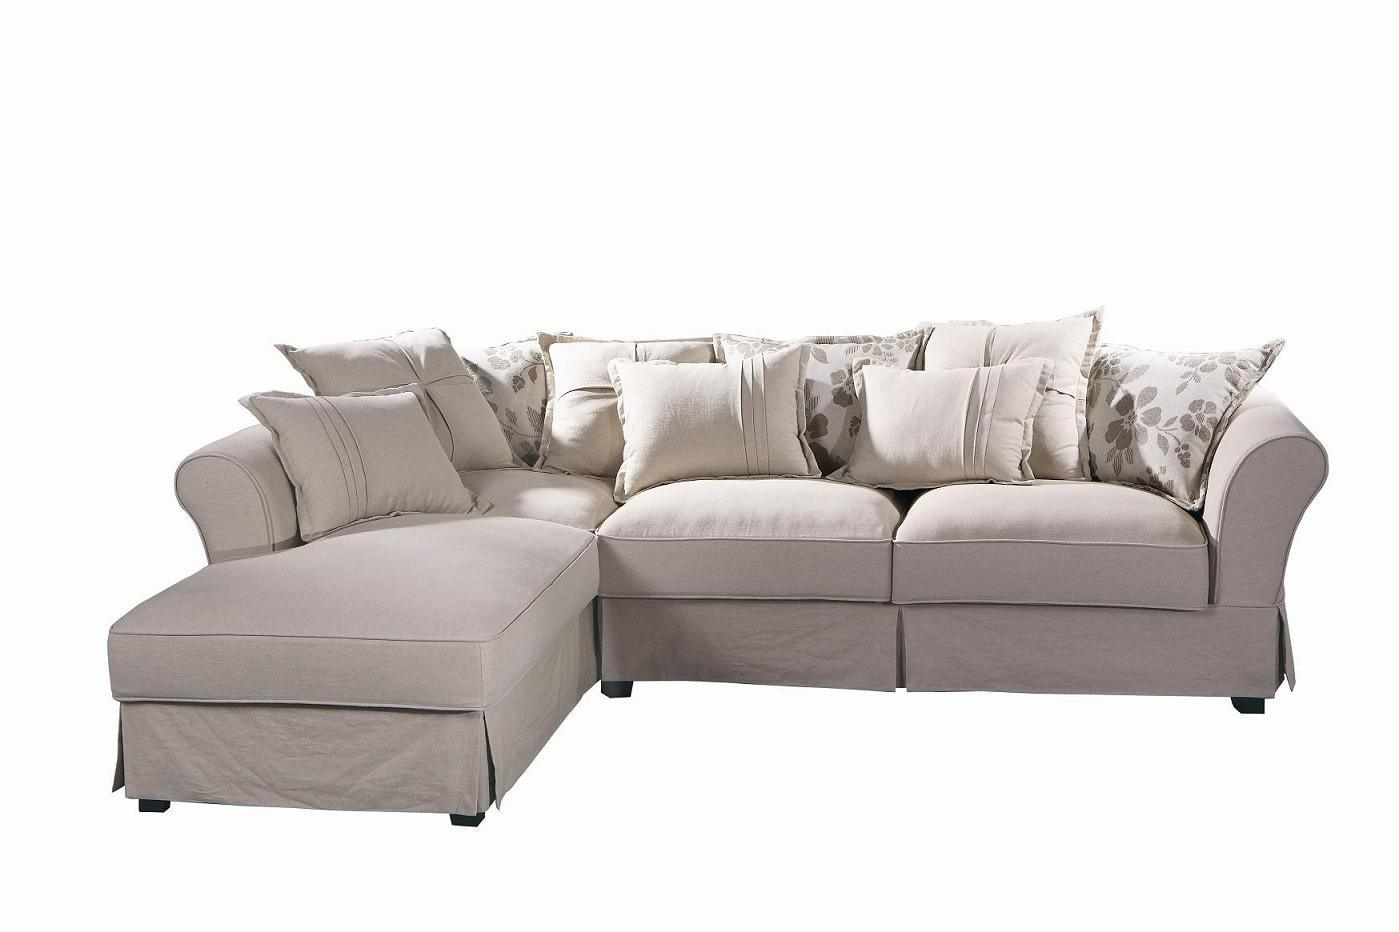 Discount sofa slipcovers cheap couch slipcovers at tattoo design bild Discount sofa loveseat